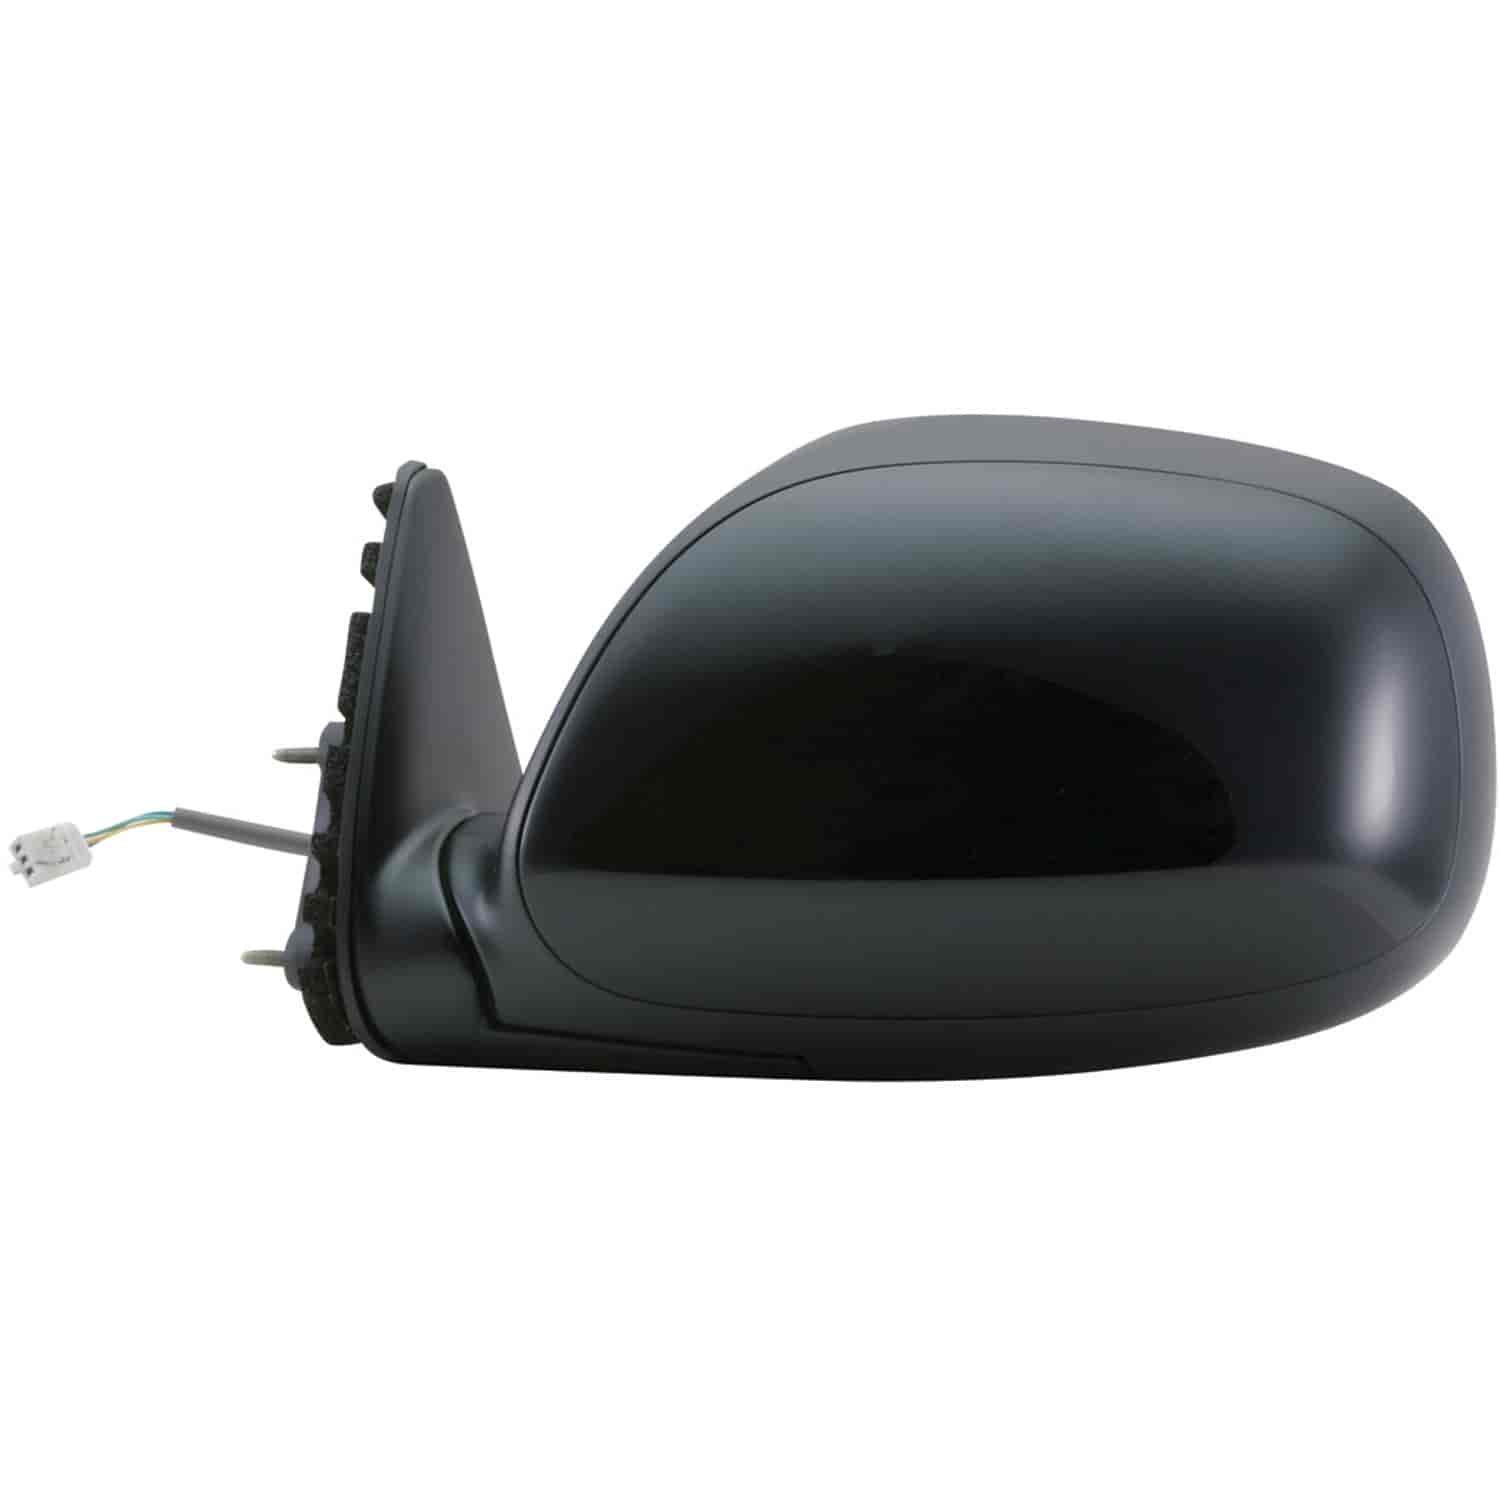 K Source 70056t Oem Style Replacement Mirror For 00 04